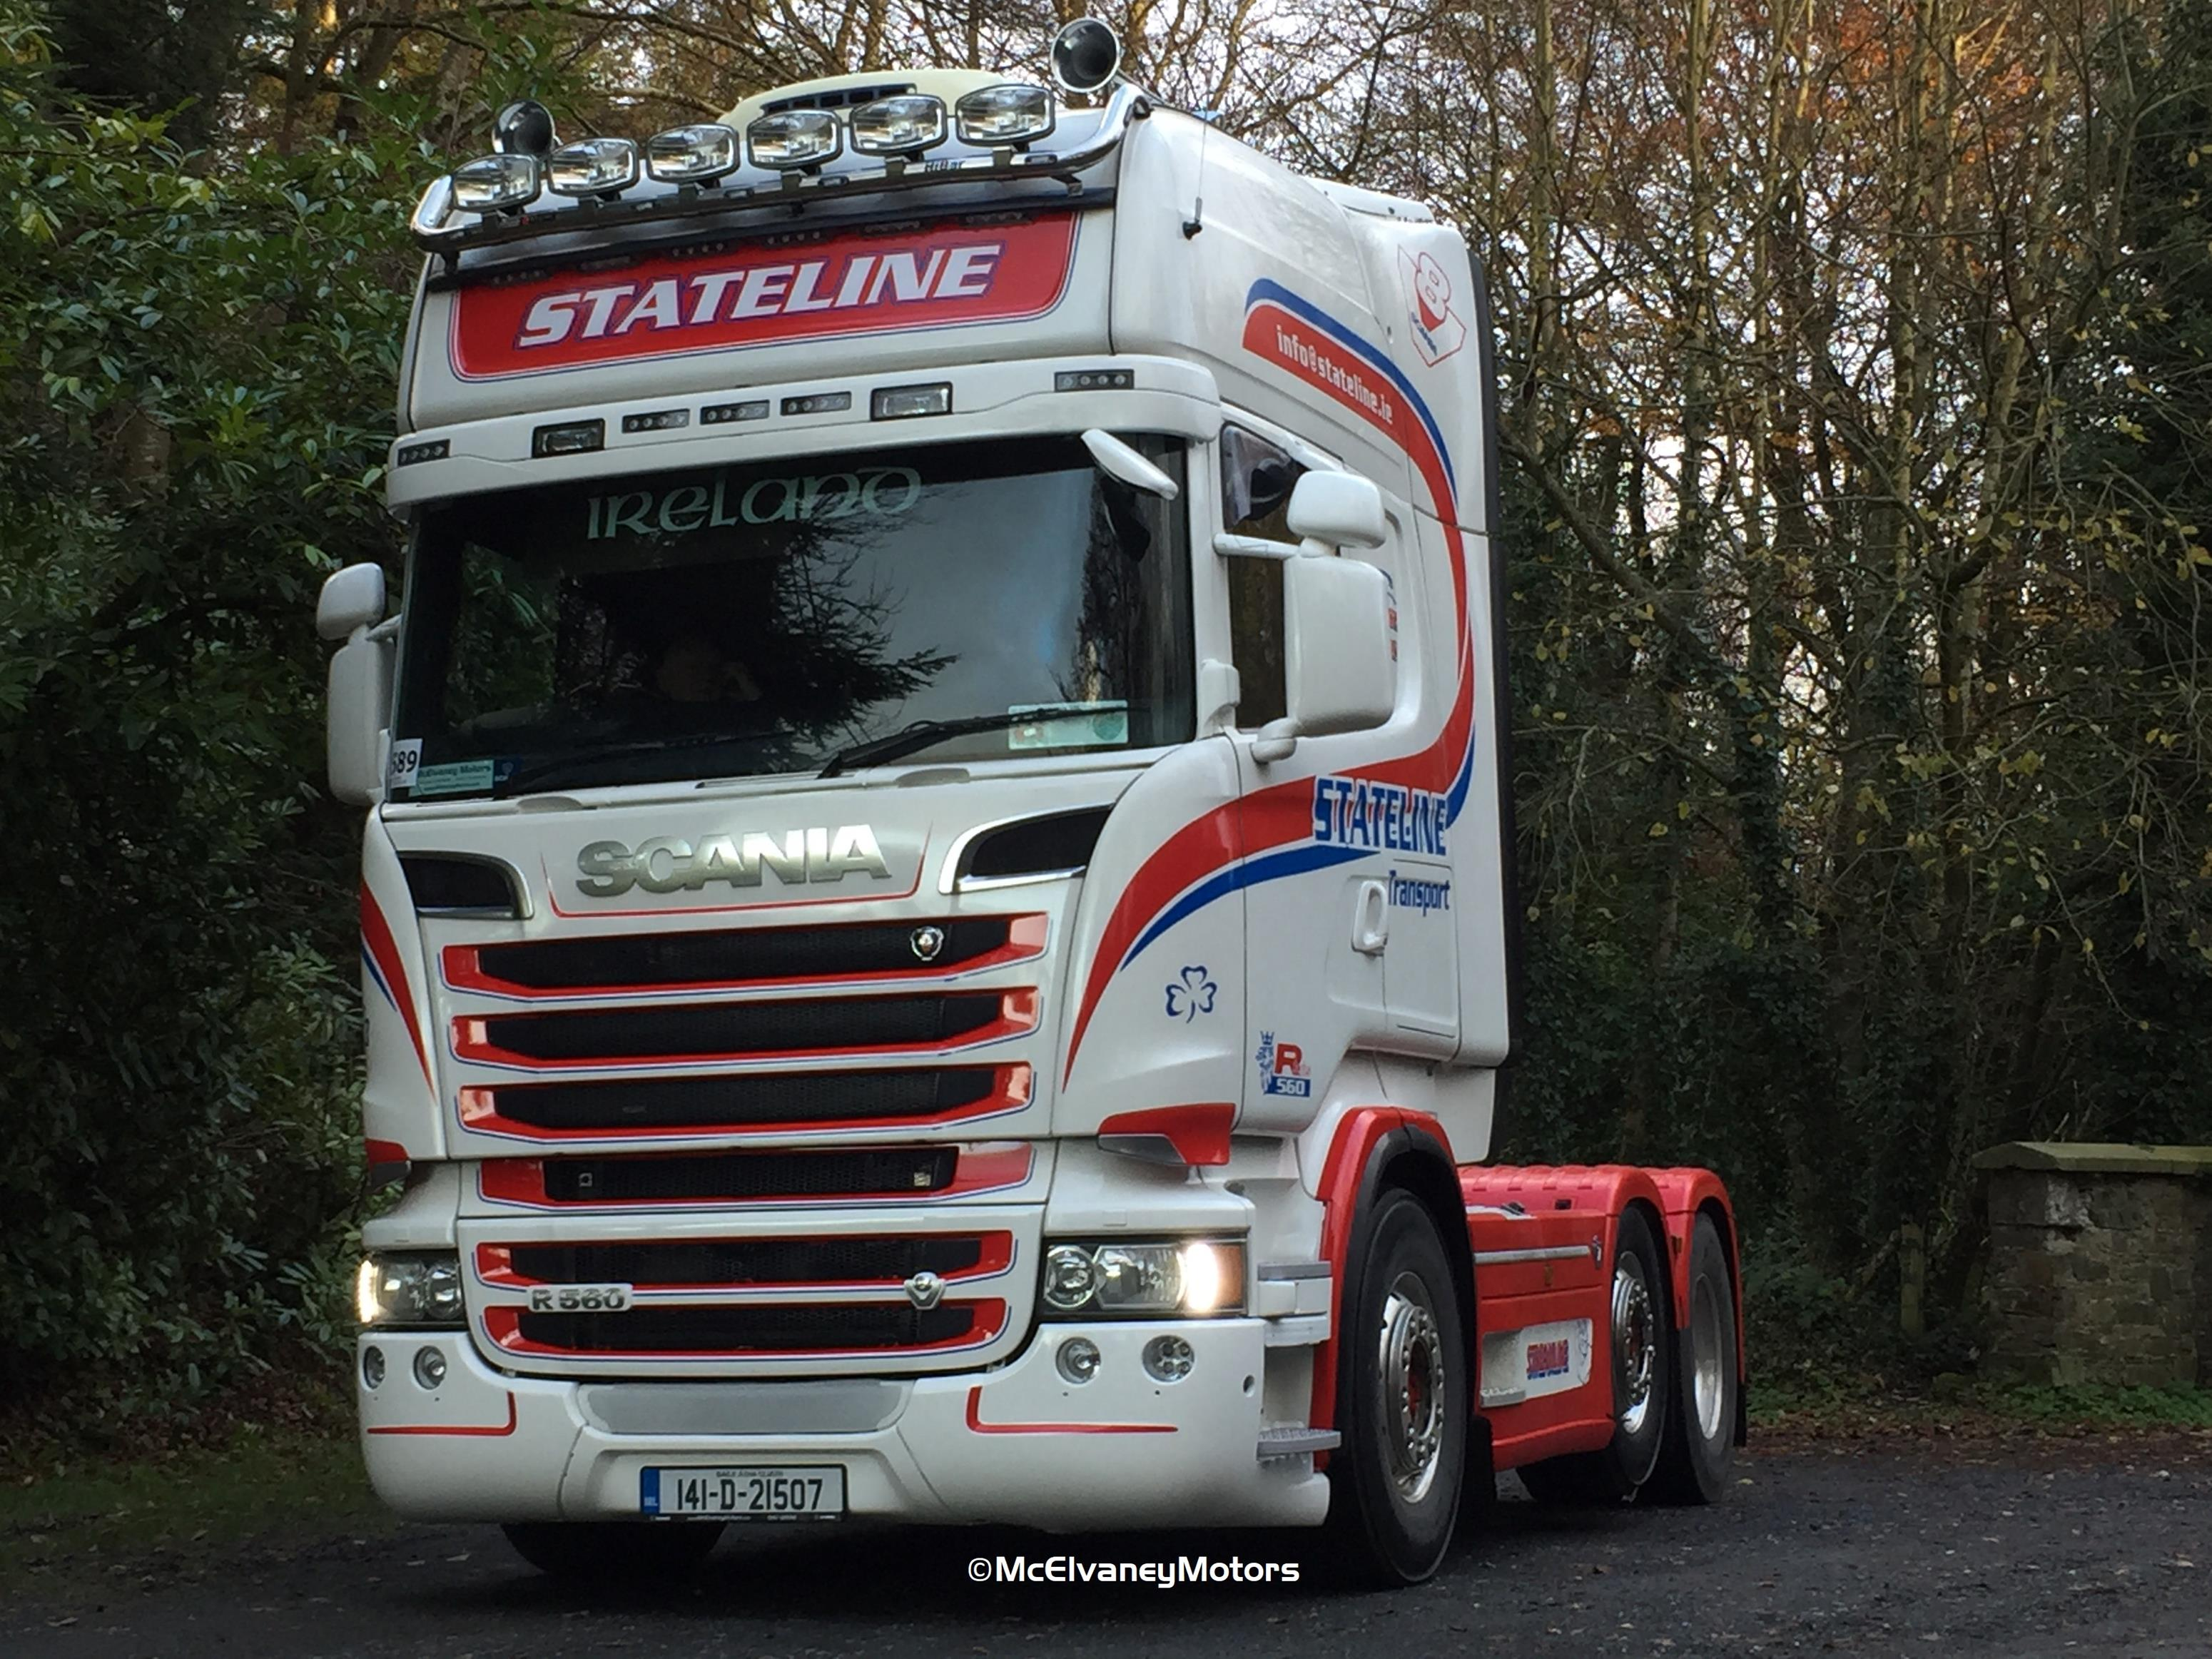 Stunning Scania R560 for Stateline Transport